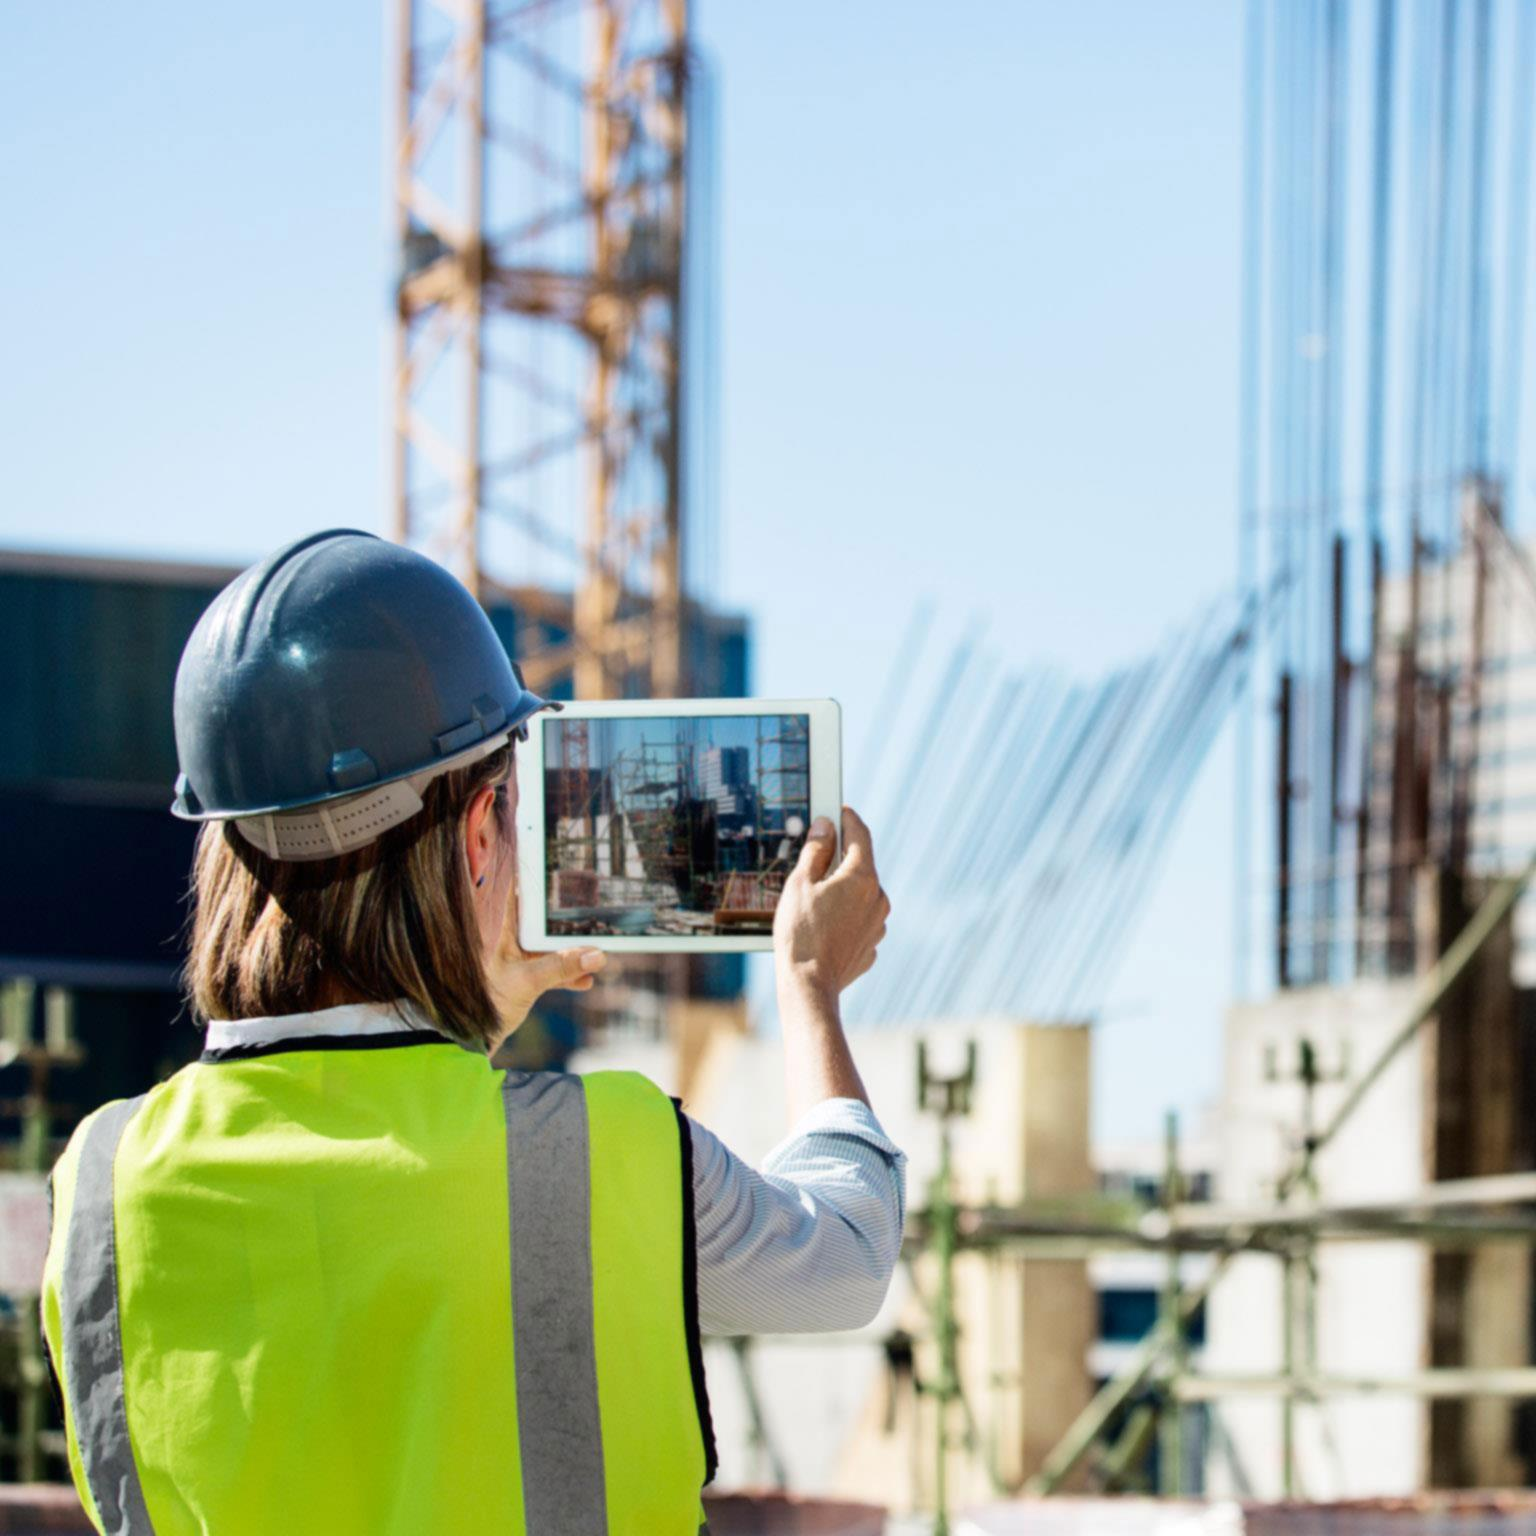 Looking for the best construction company? Here are the aspects to consider